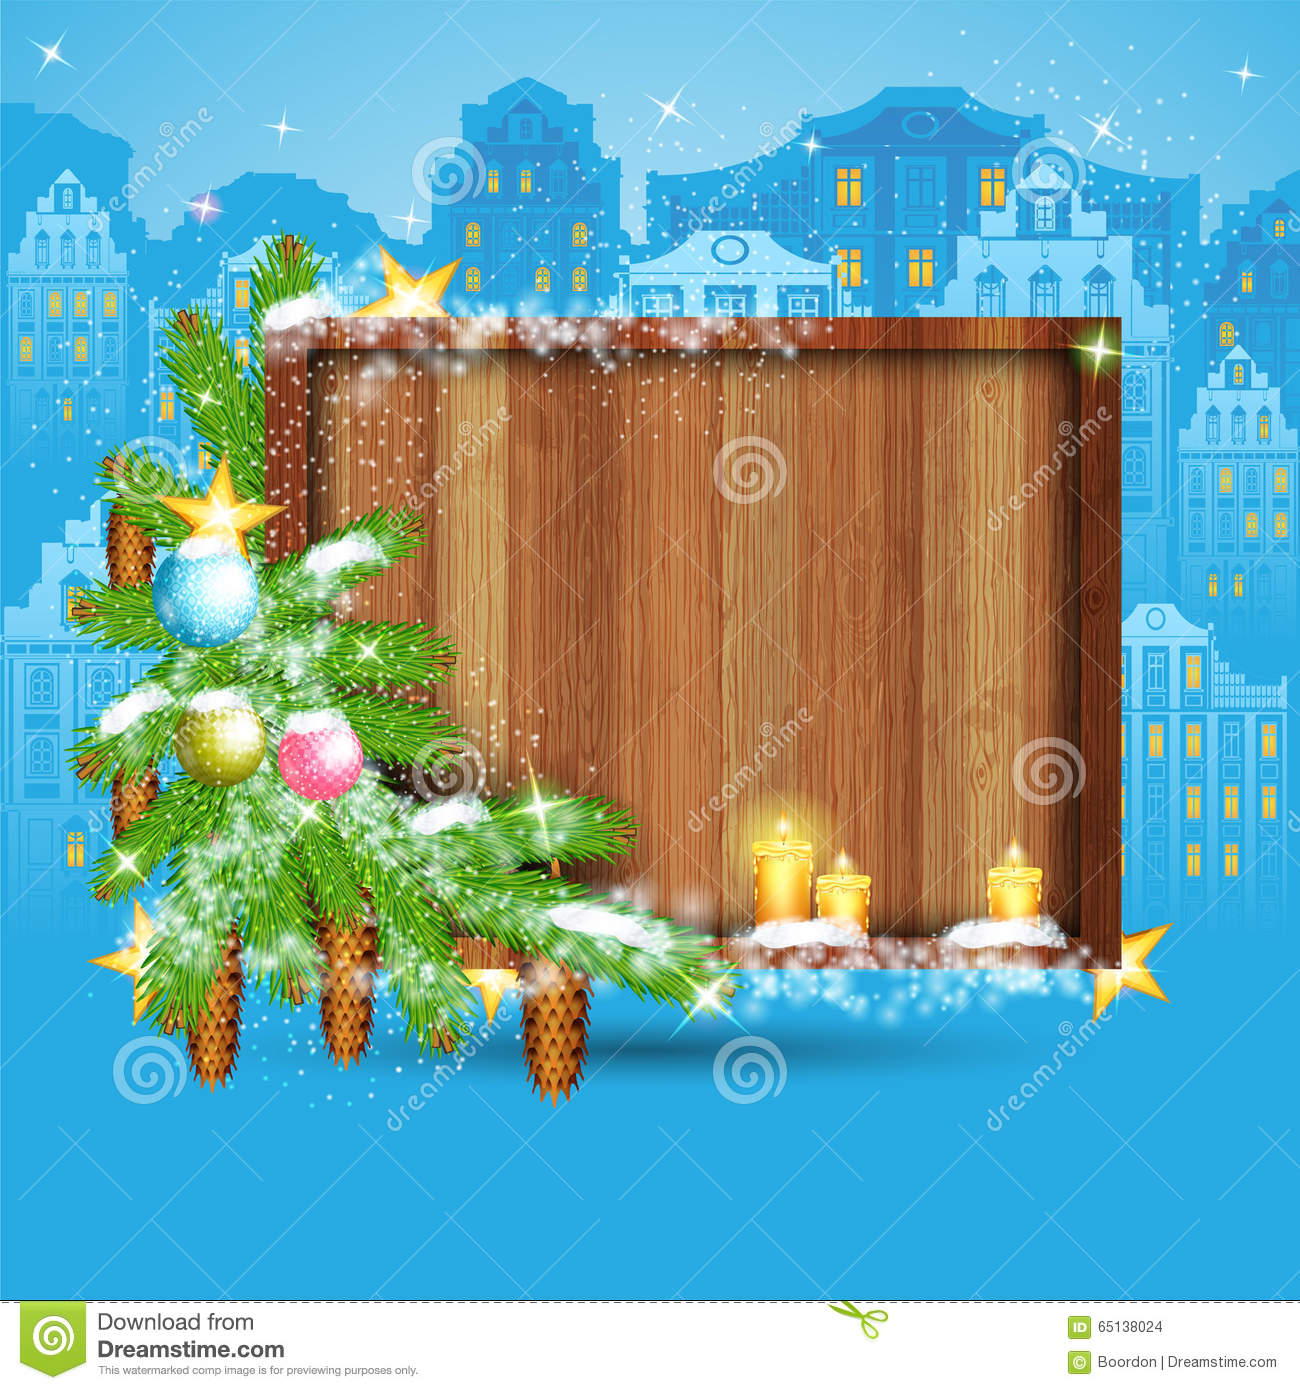 Fir tree branch with stars and candles around square wood border on night old town